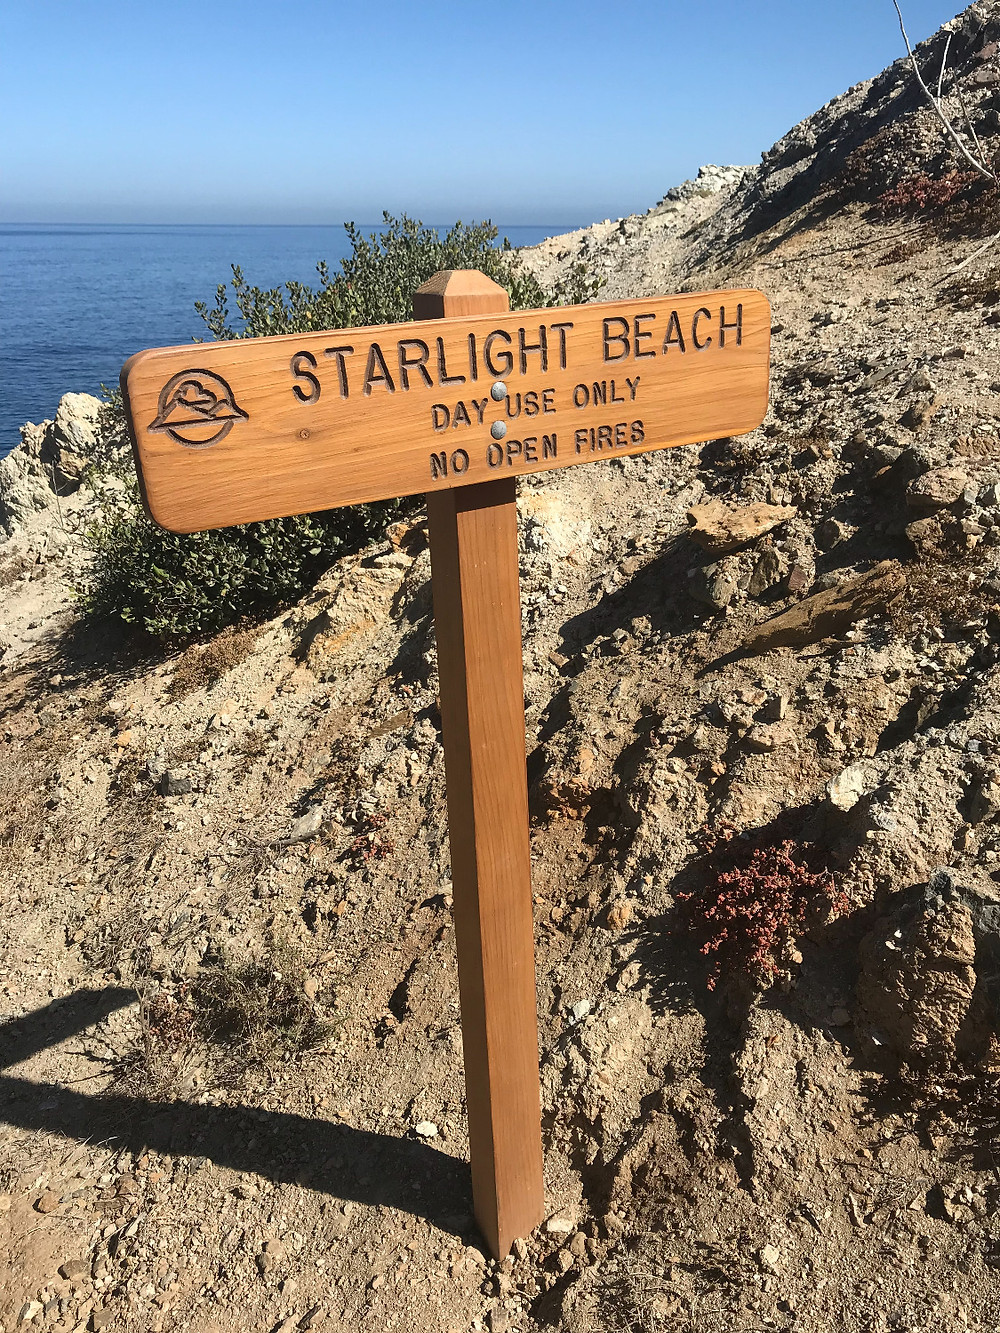 Starlight Beach